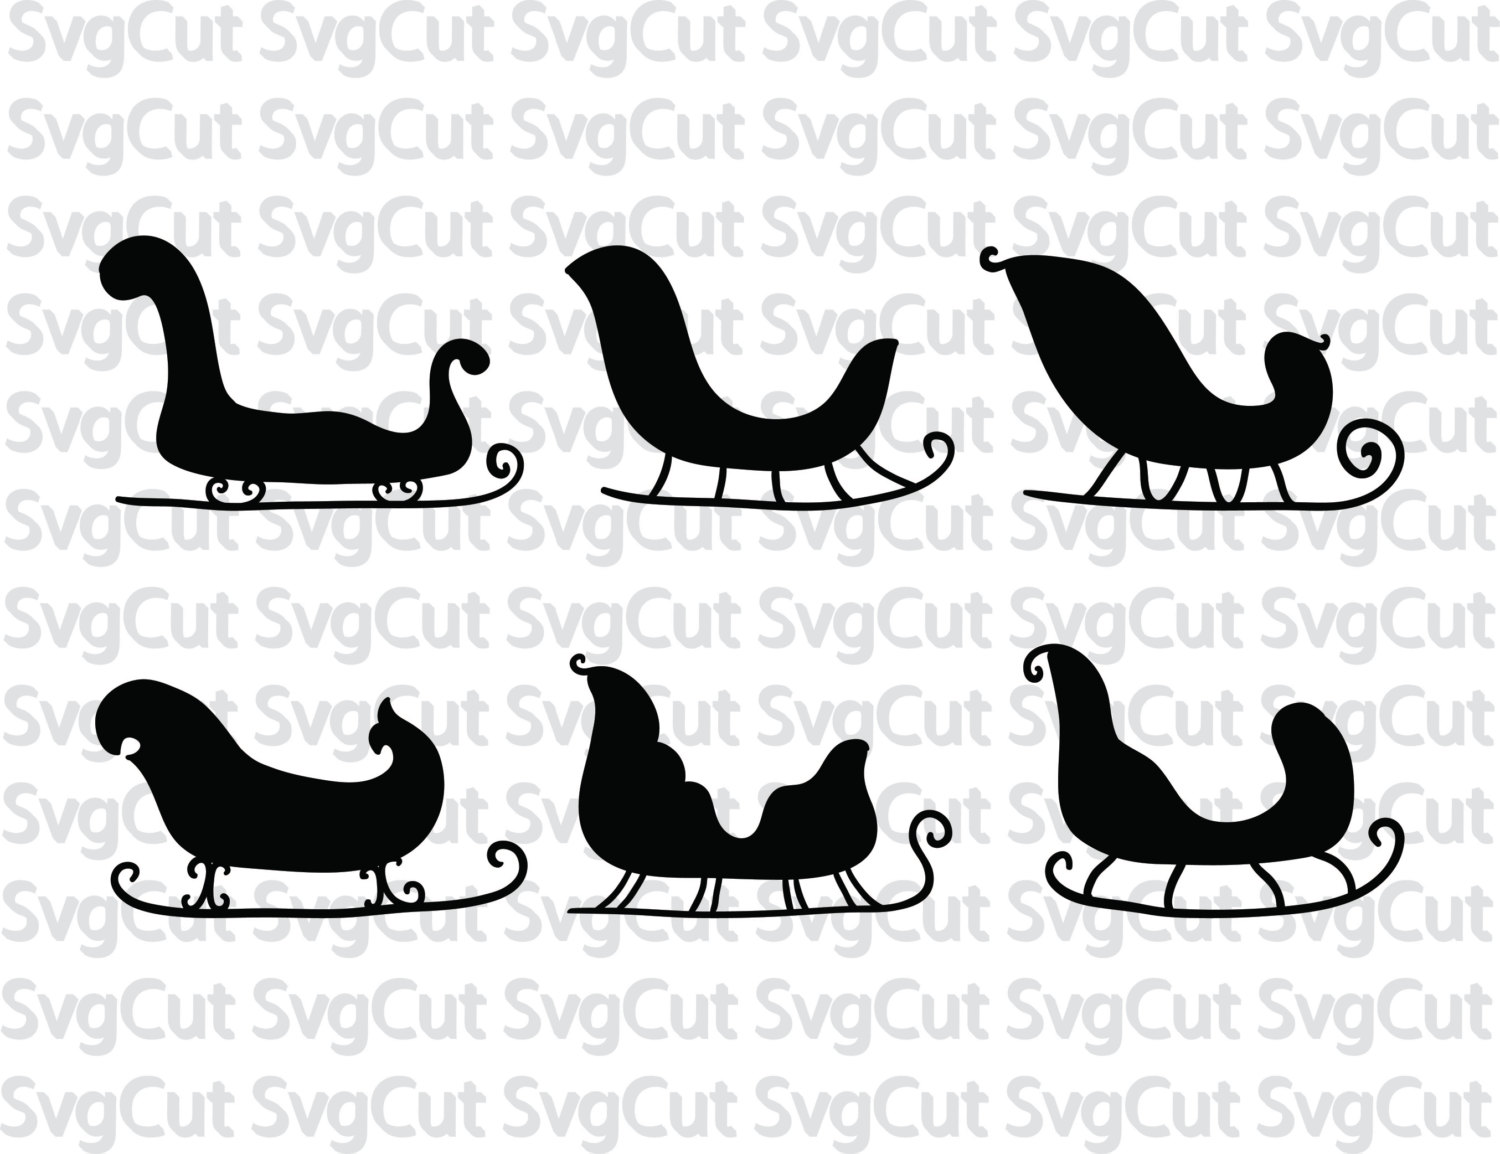 Sleigh svg #698, Download drawings